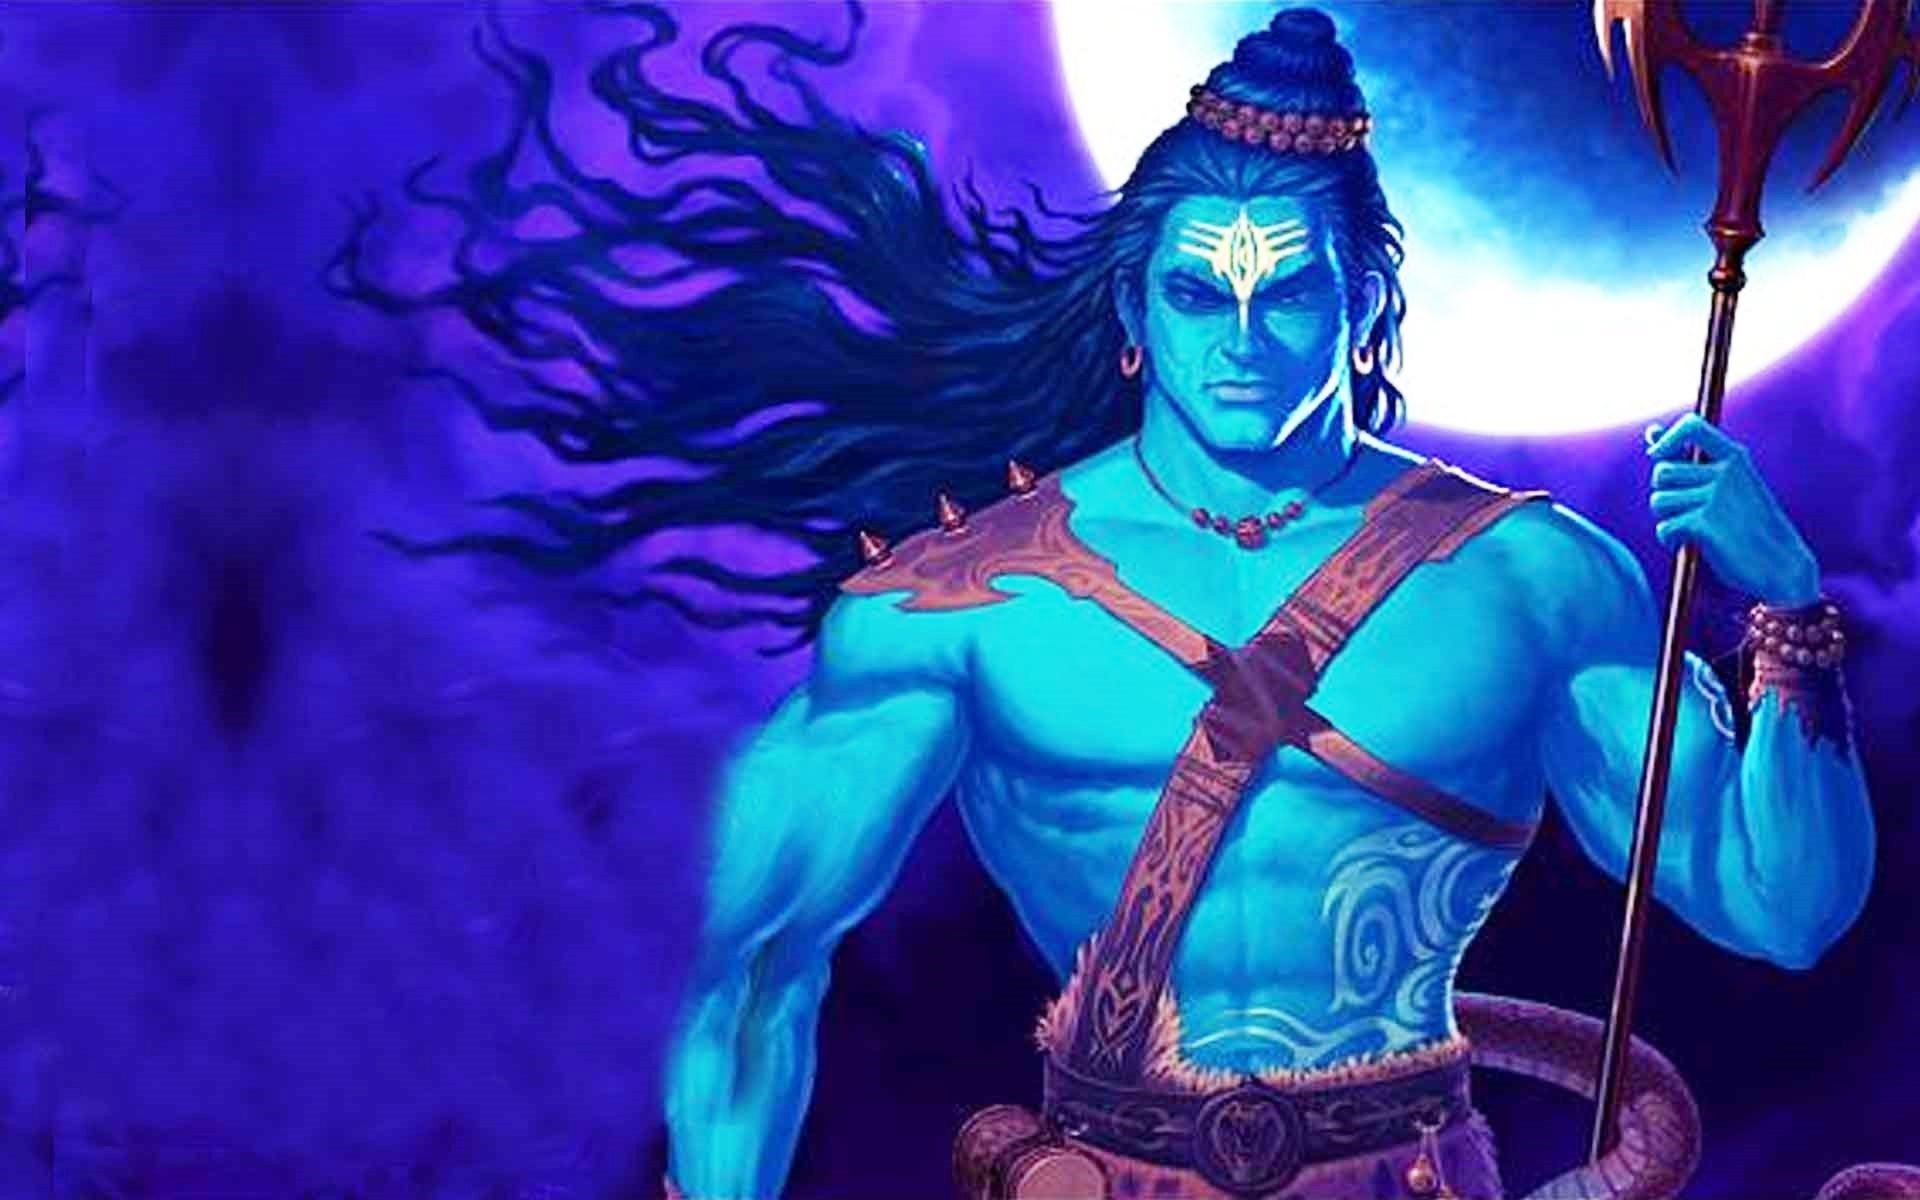 hd shiva wallpapers 72 images getwallpapers com